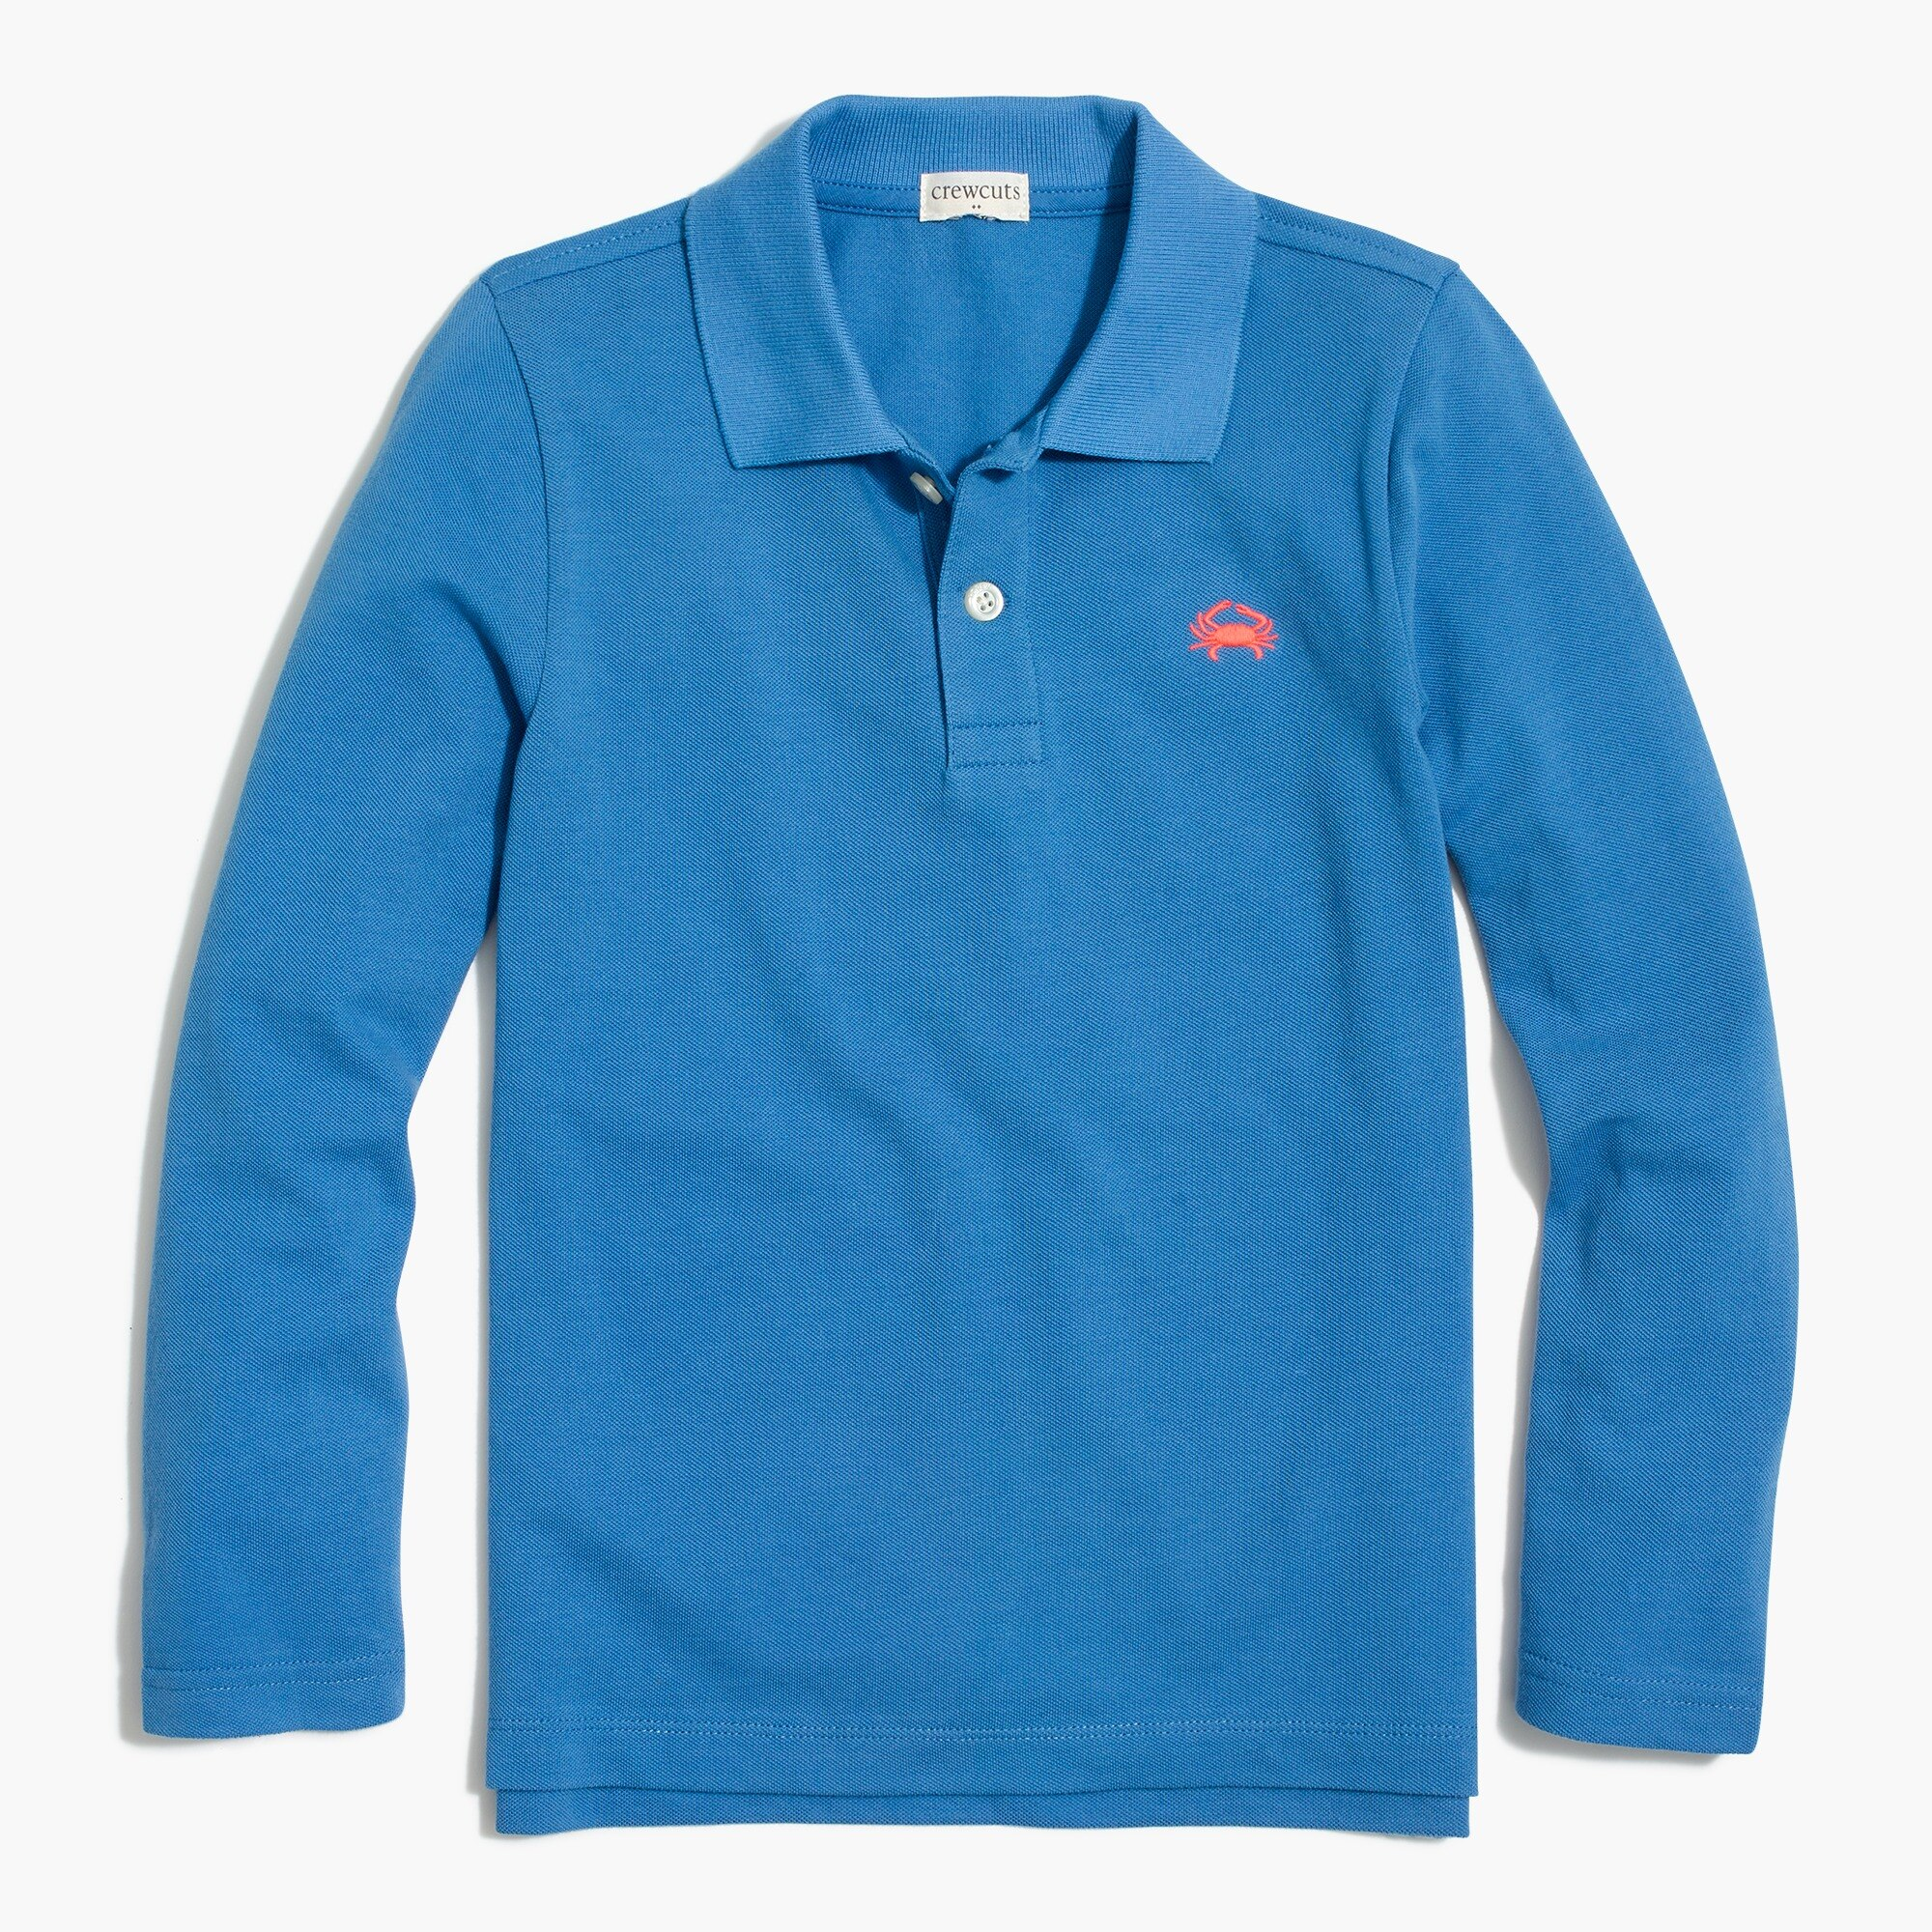 factory boys Boys' long-sleeve critter piqué polo